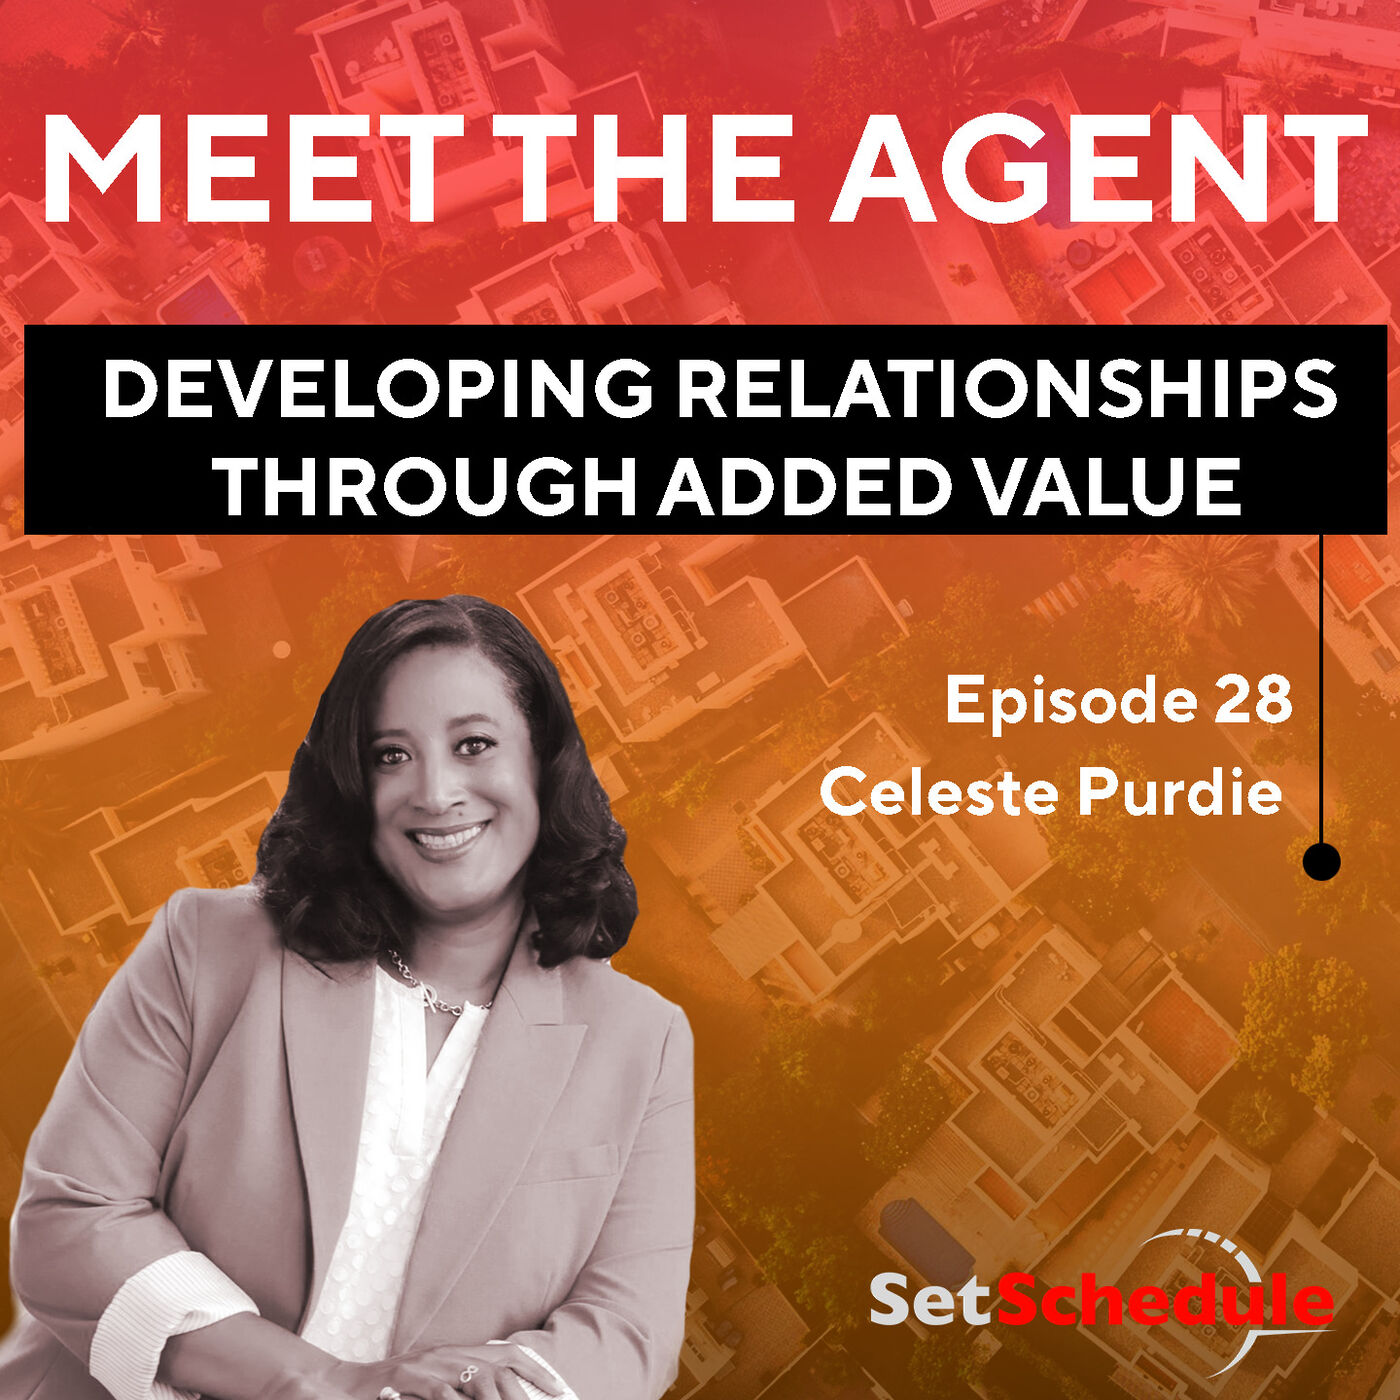 Developing Relationships Through Added Value! - Celeste Purdie